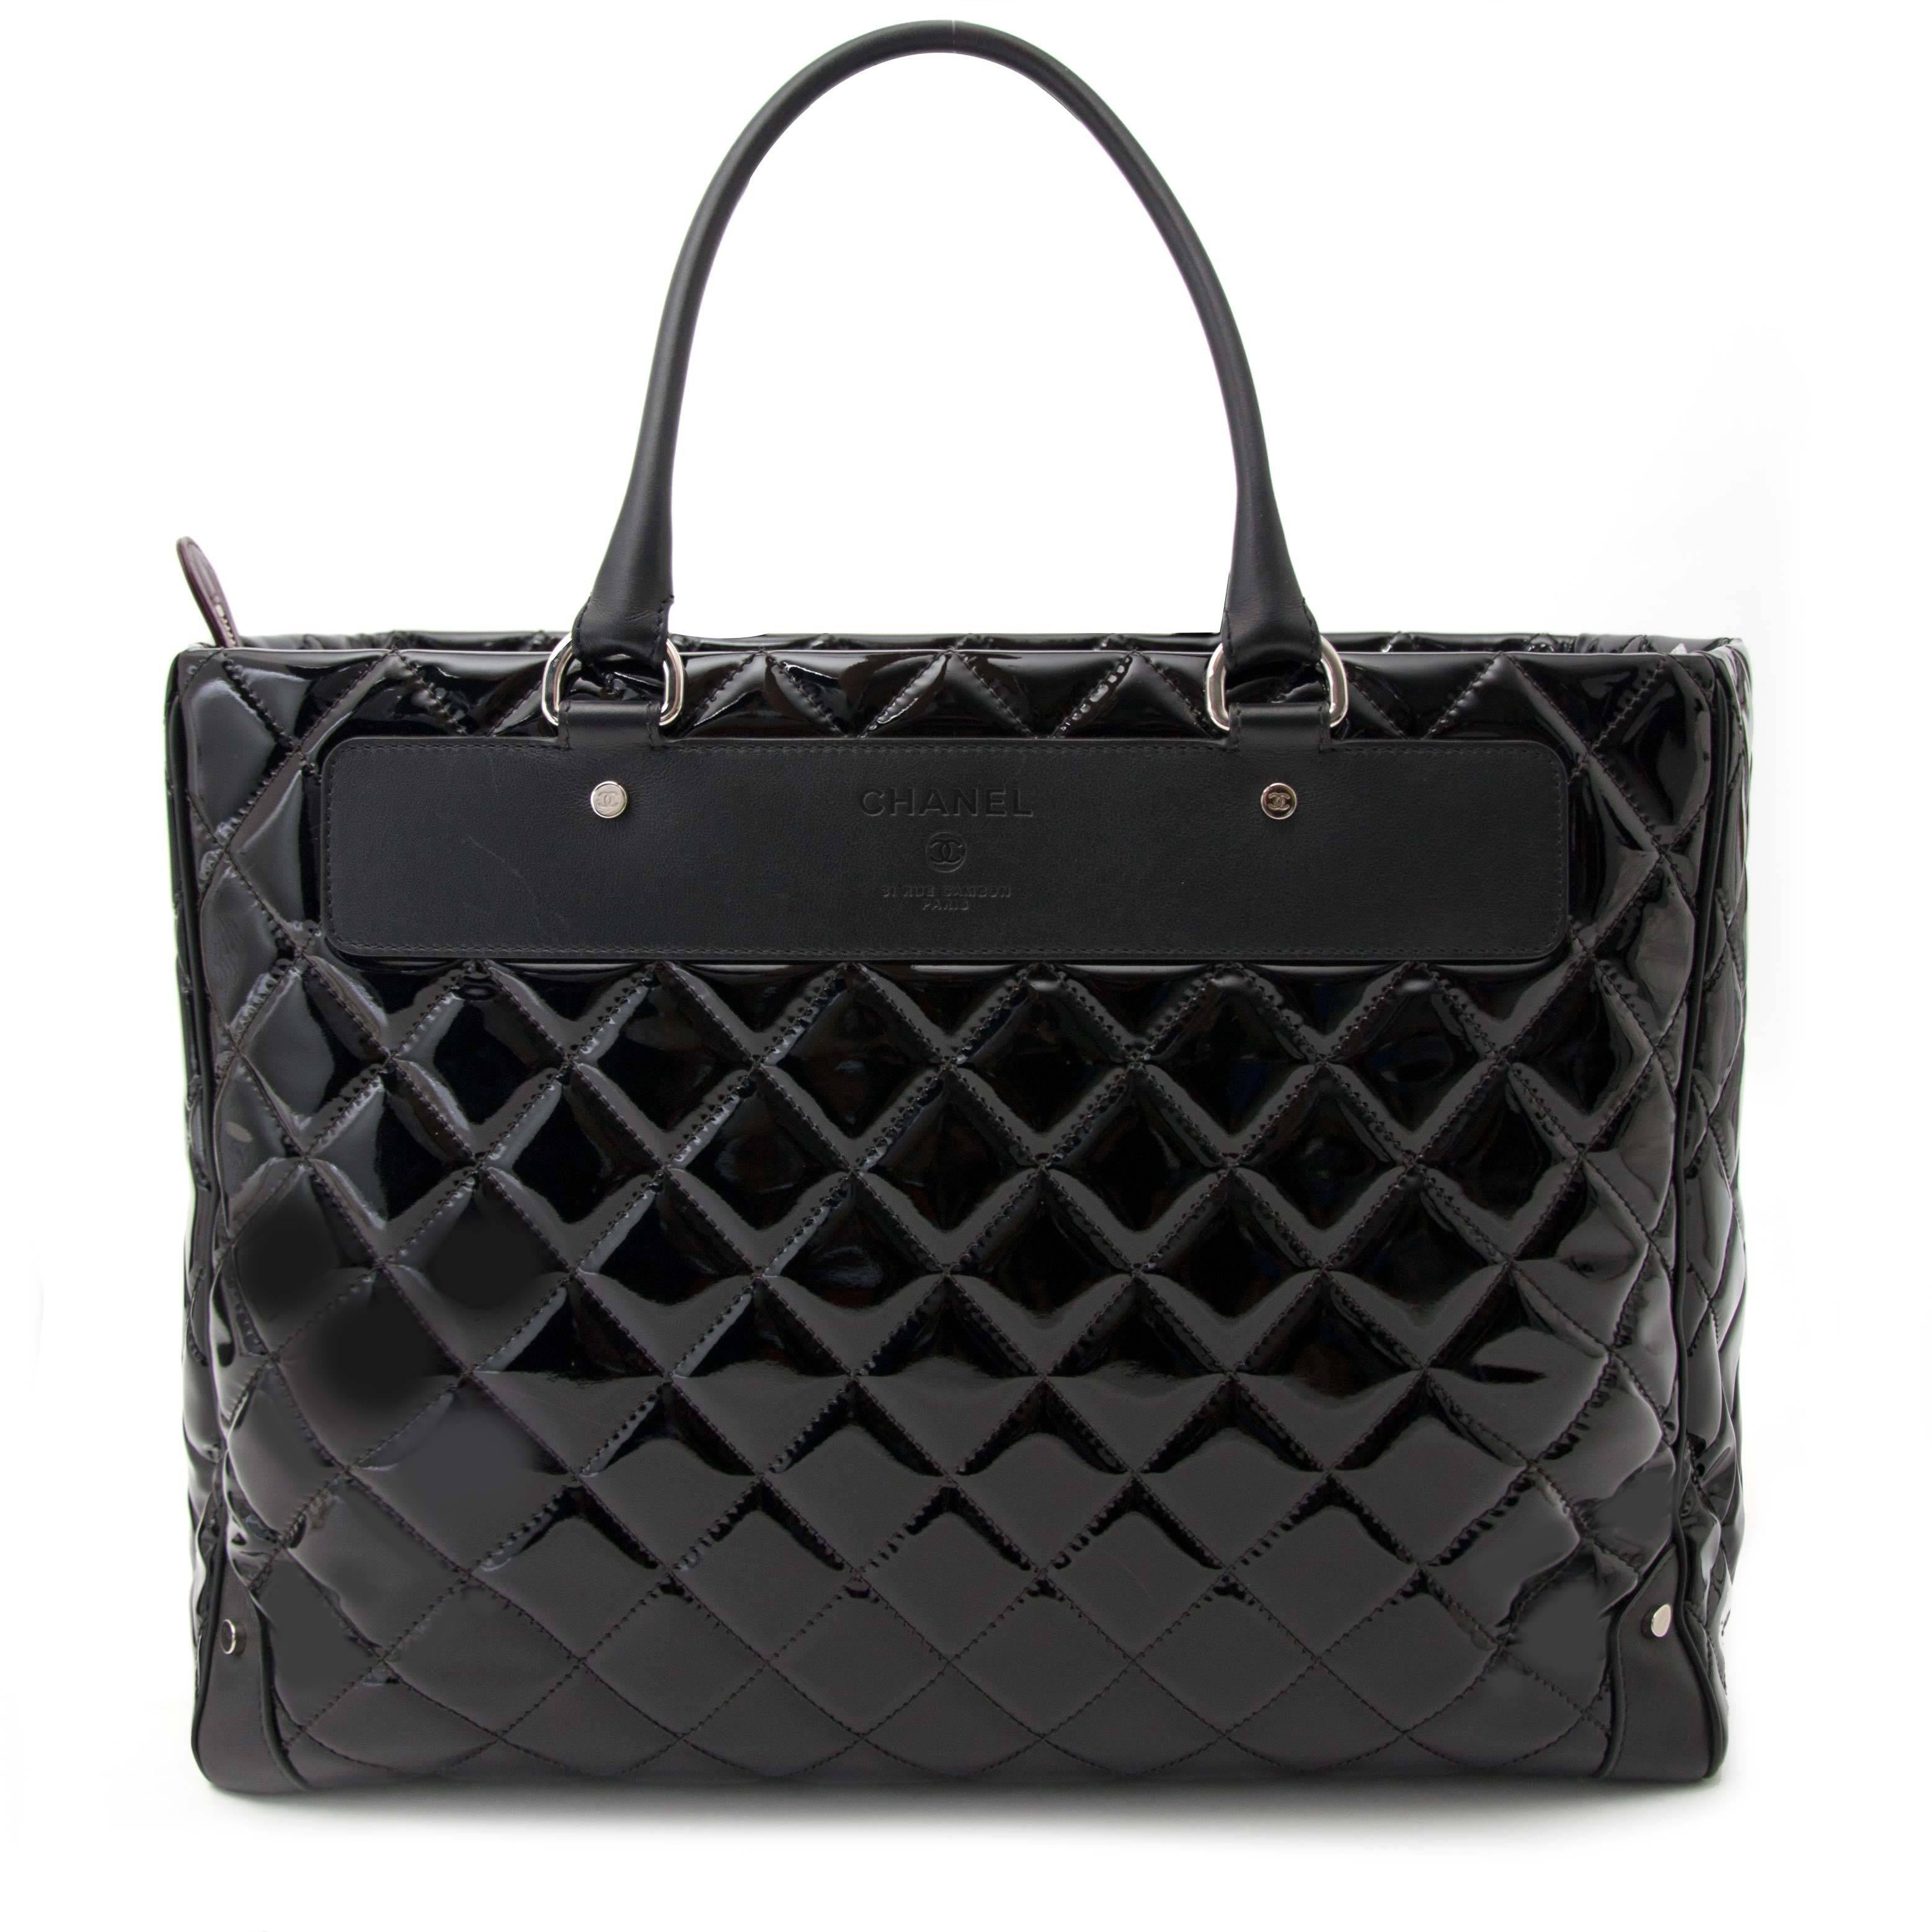 67c336153a2e Chanel Vinyl Quilted Calfskin Travel Tote For Sale at 1stdibs